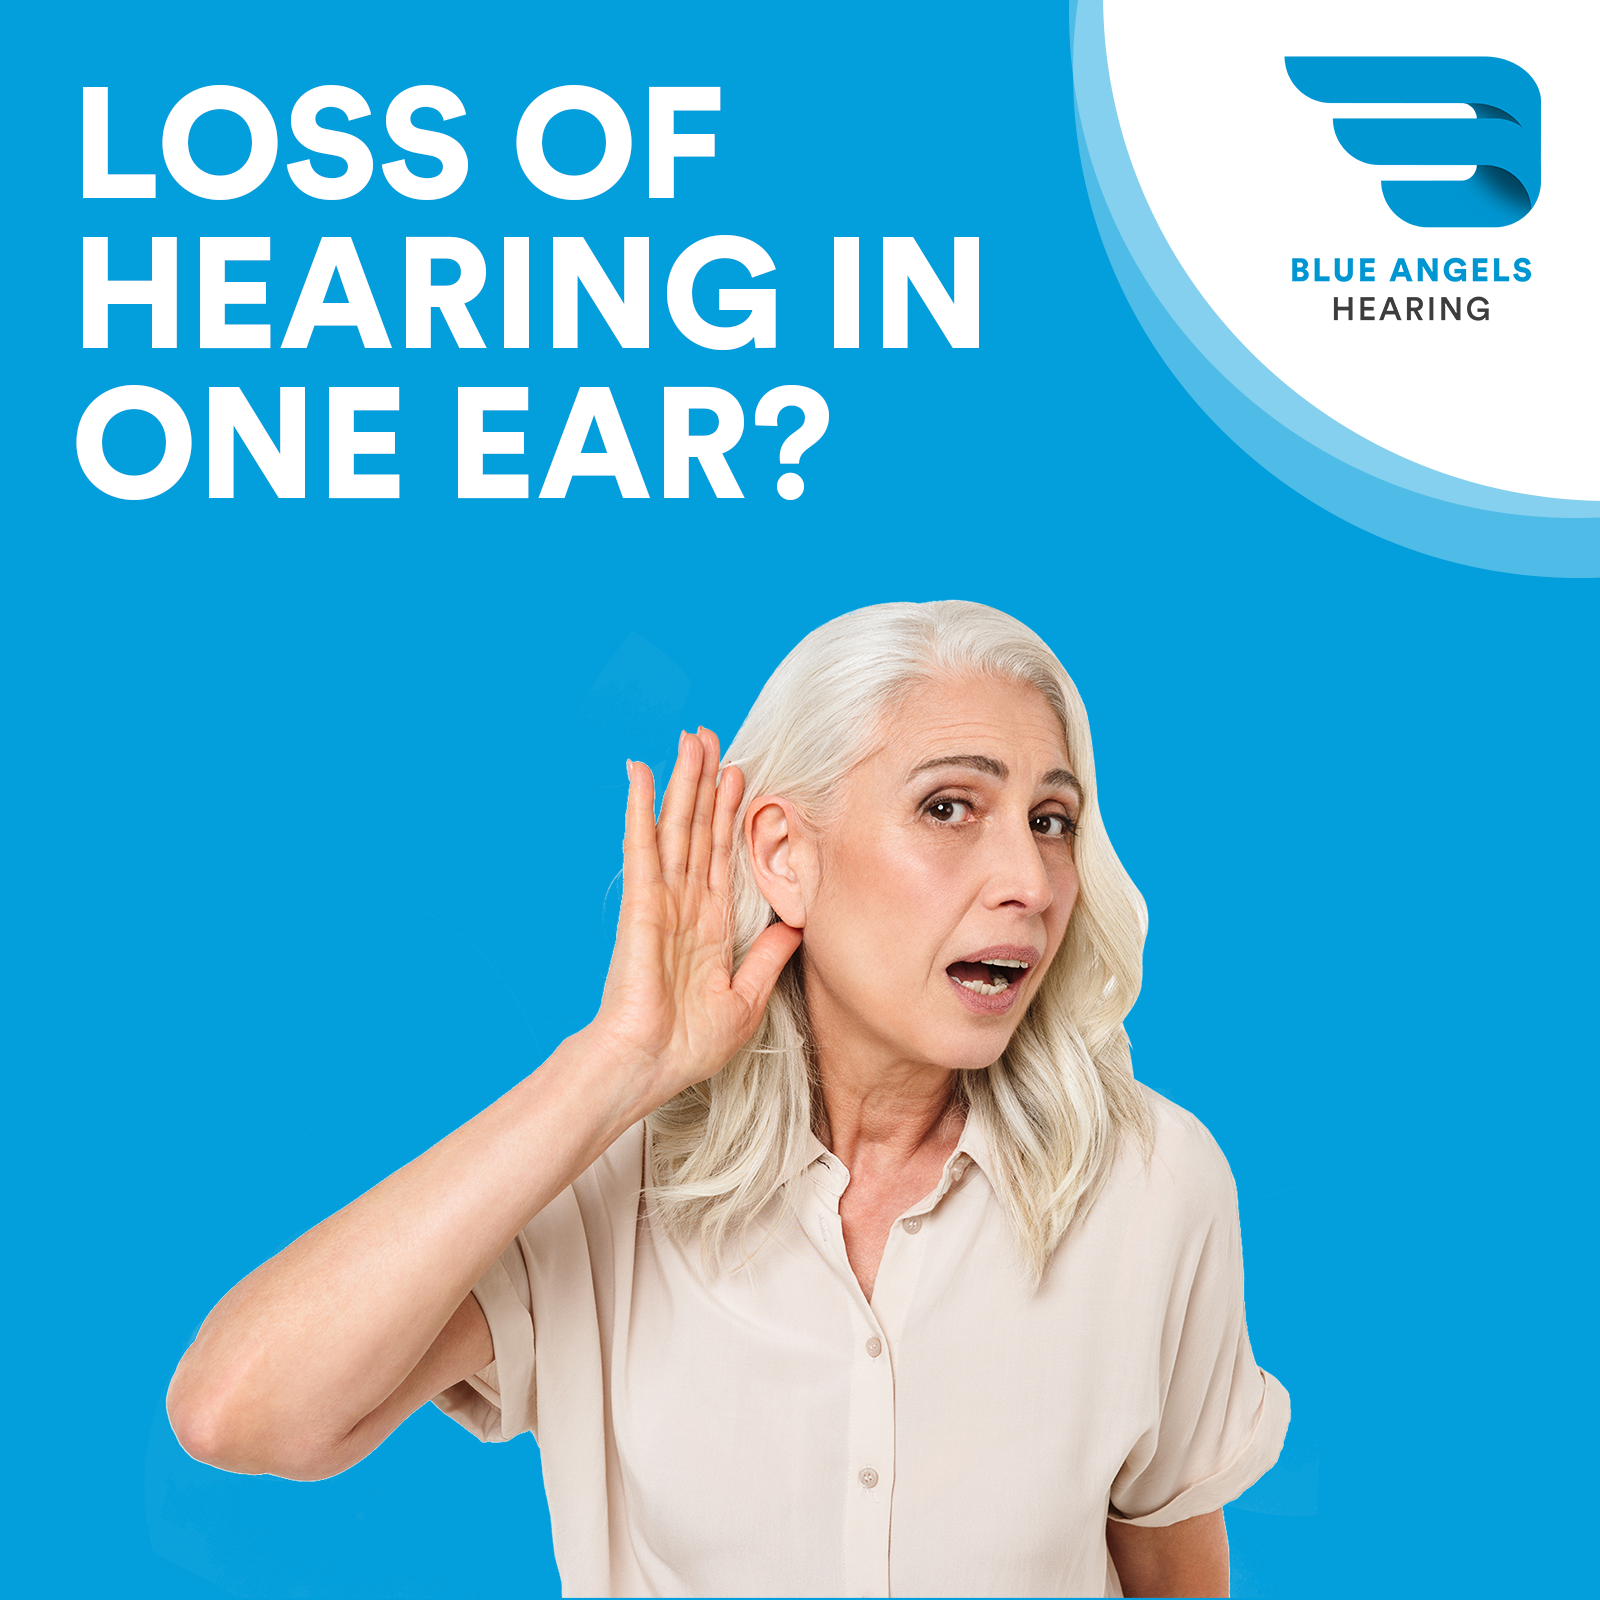 Loss of Hearing in One Ear? What You Should Do